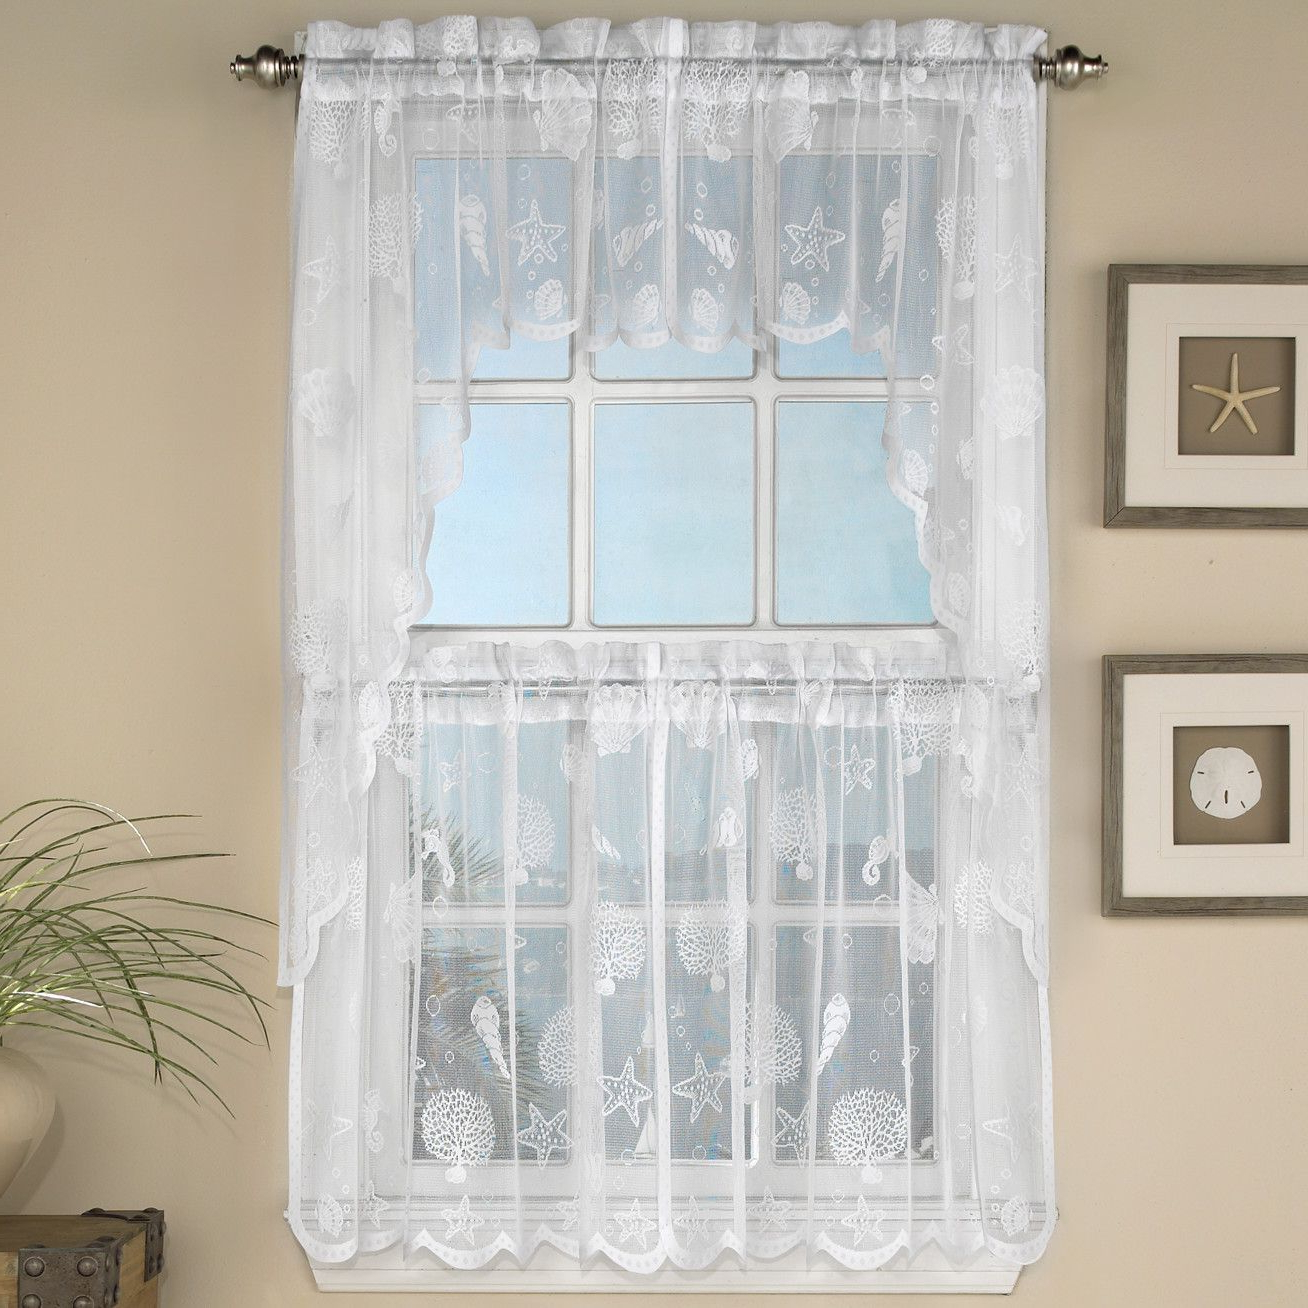 Reef Marine Semi Sheer Rod Pocket Kitchen Curtain Panels Within Most Recently Released Floral Lace Rod Pocket Kitchen Curtain Valance And Tiers Sets (View 13 of 20)